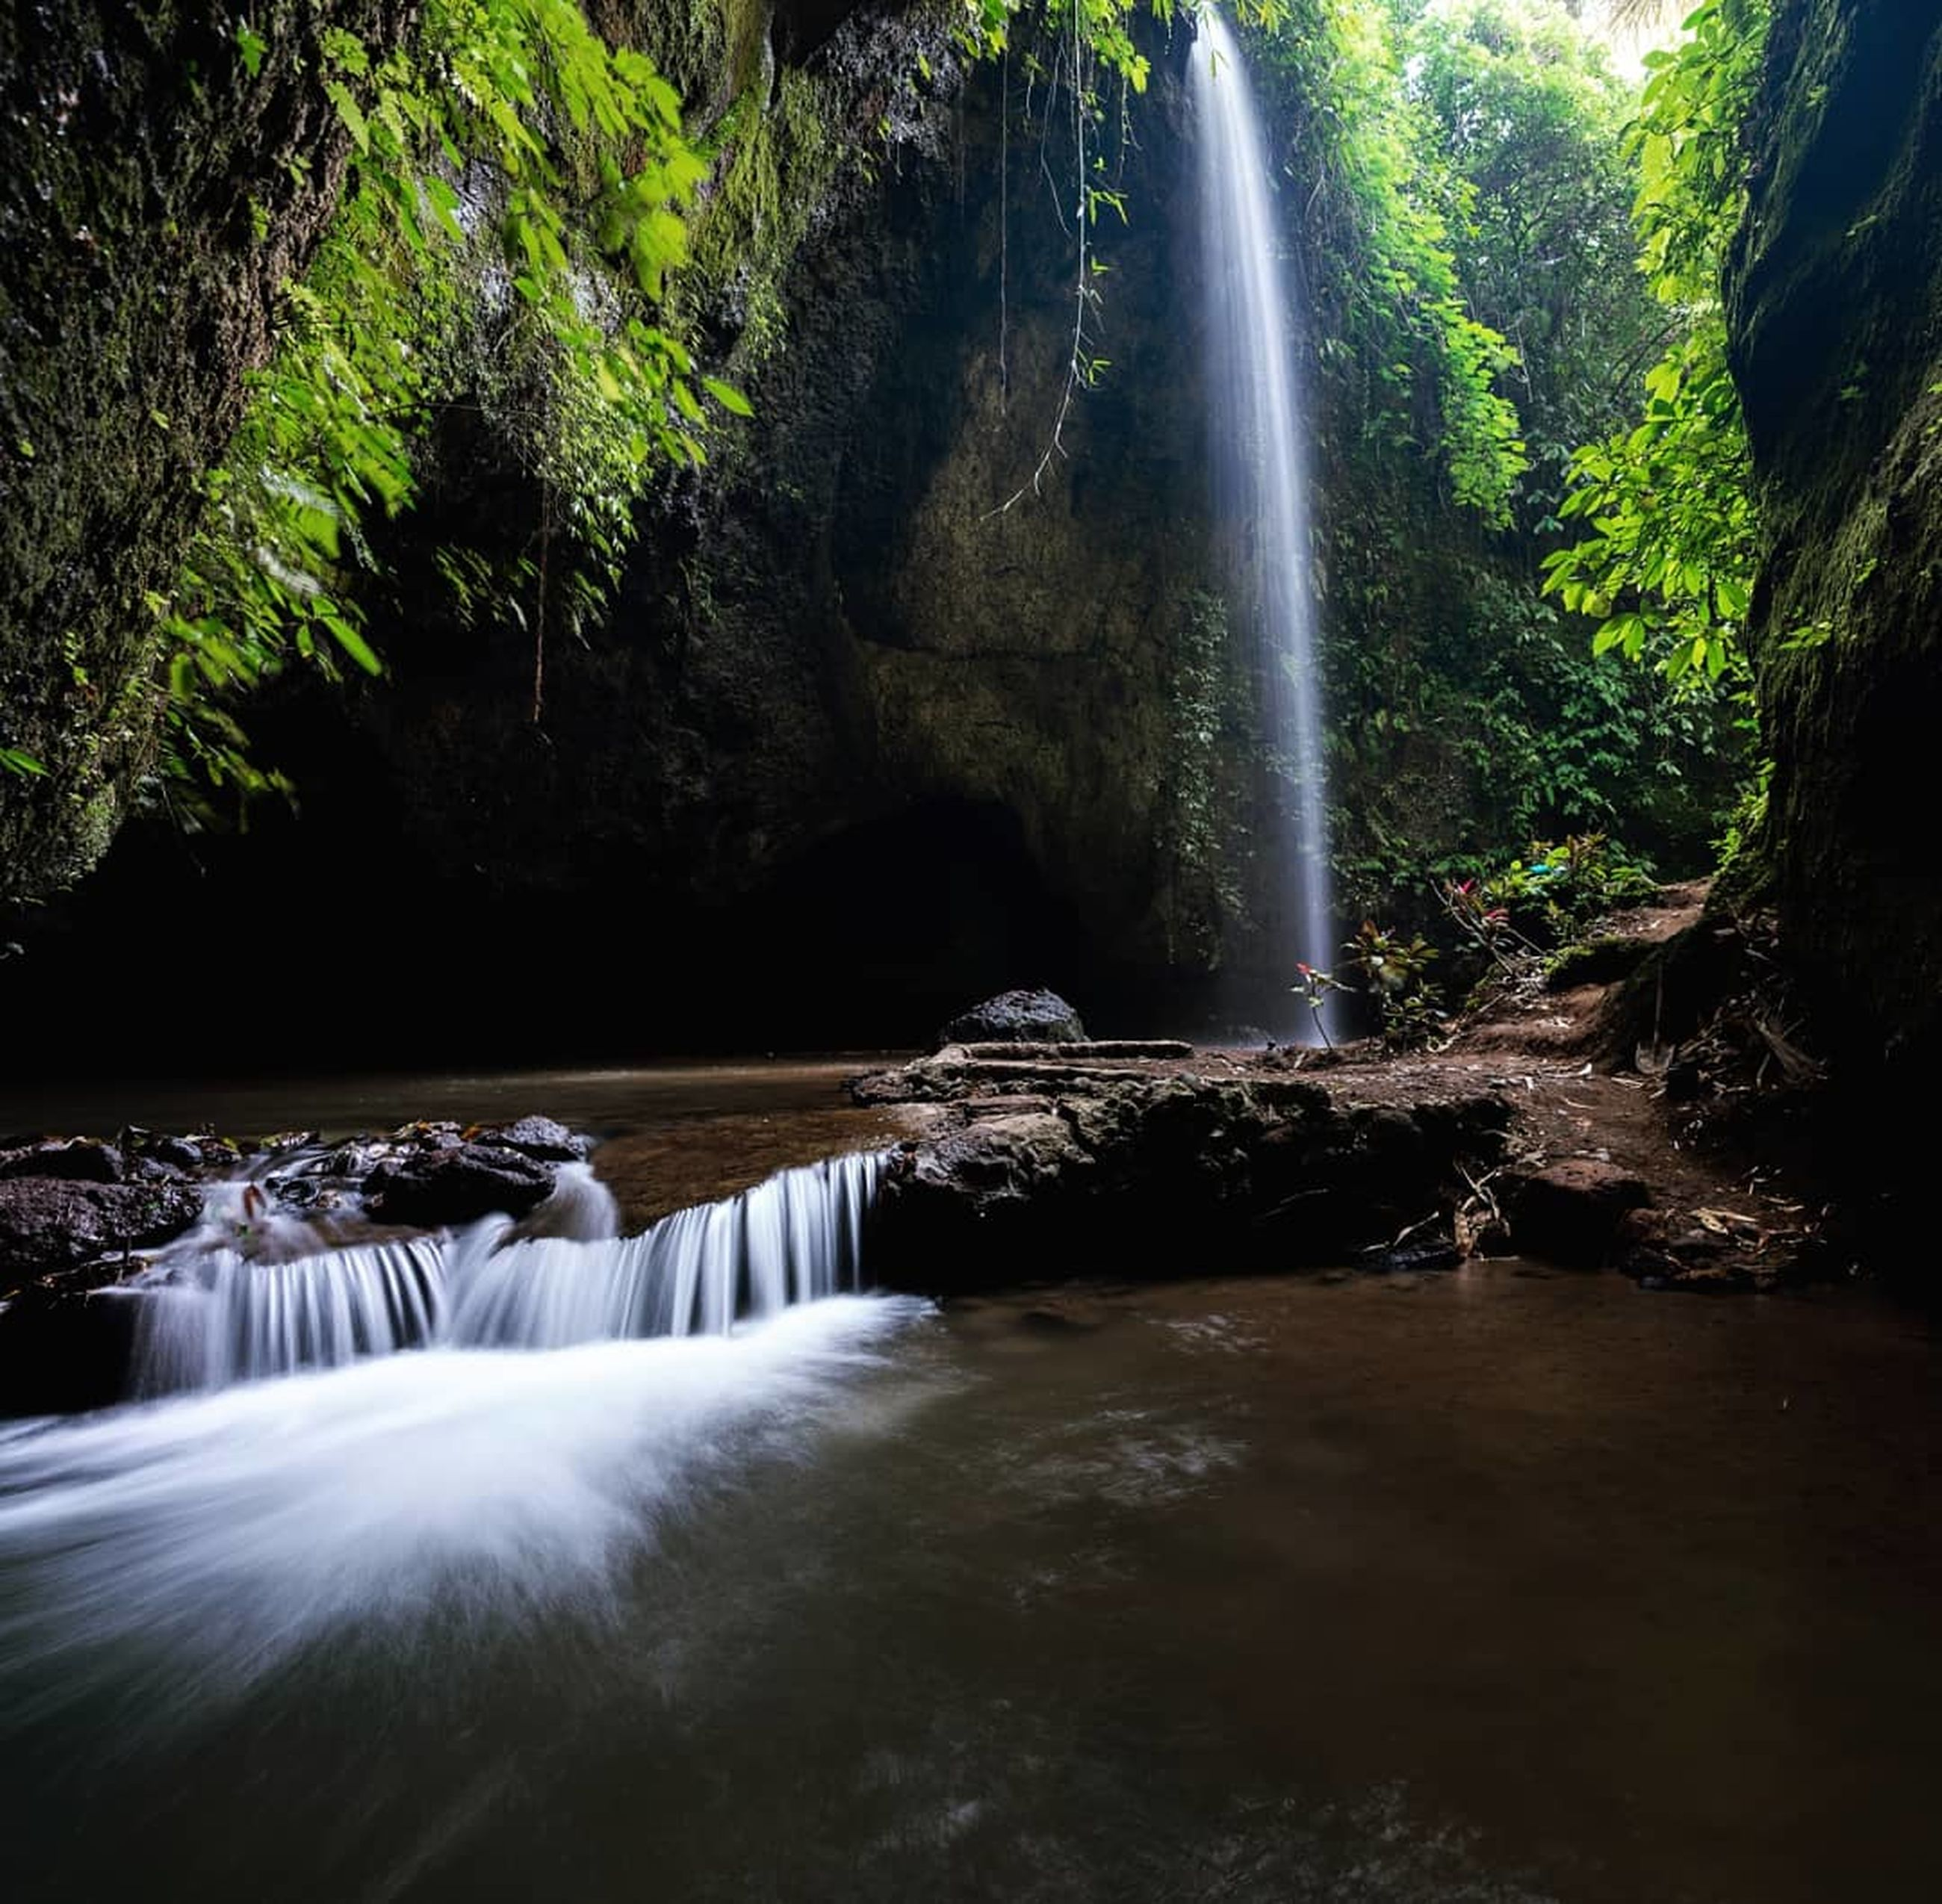 waterfall, water, long exposure, flowing water, motion, scenics - nature, tree, forest, blurred motion, beauty in nature, nature, flowing, land, plant, splashing, solid, power in nature, environment, no people, rainforest, outdoors, falling water, stream - flowing water